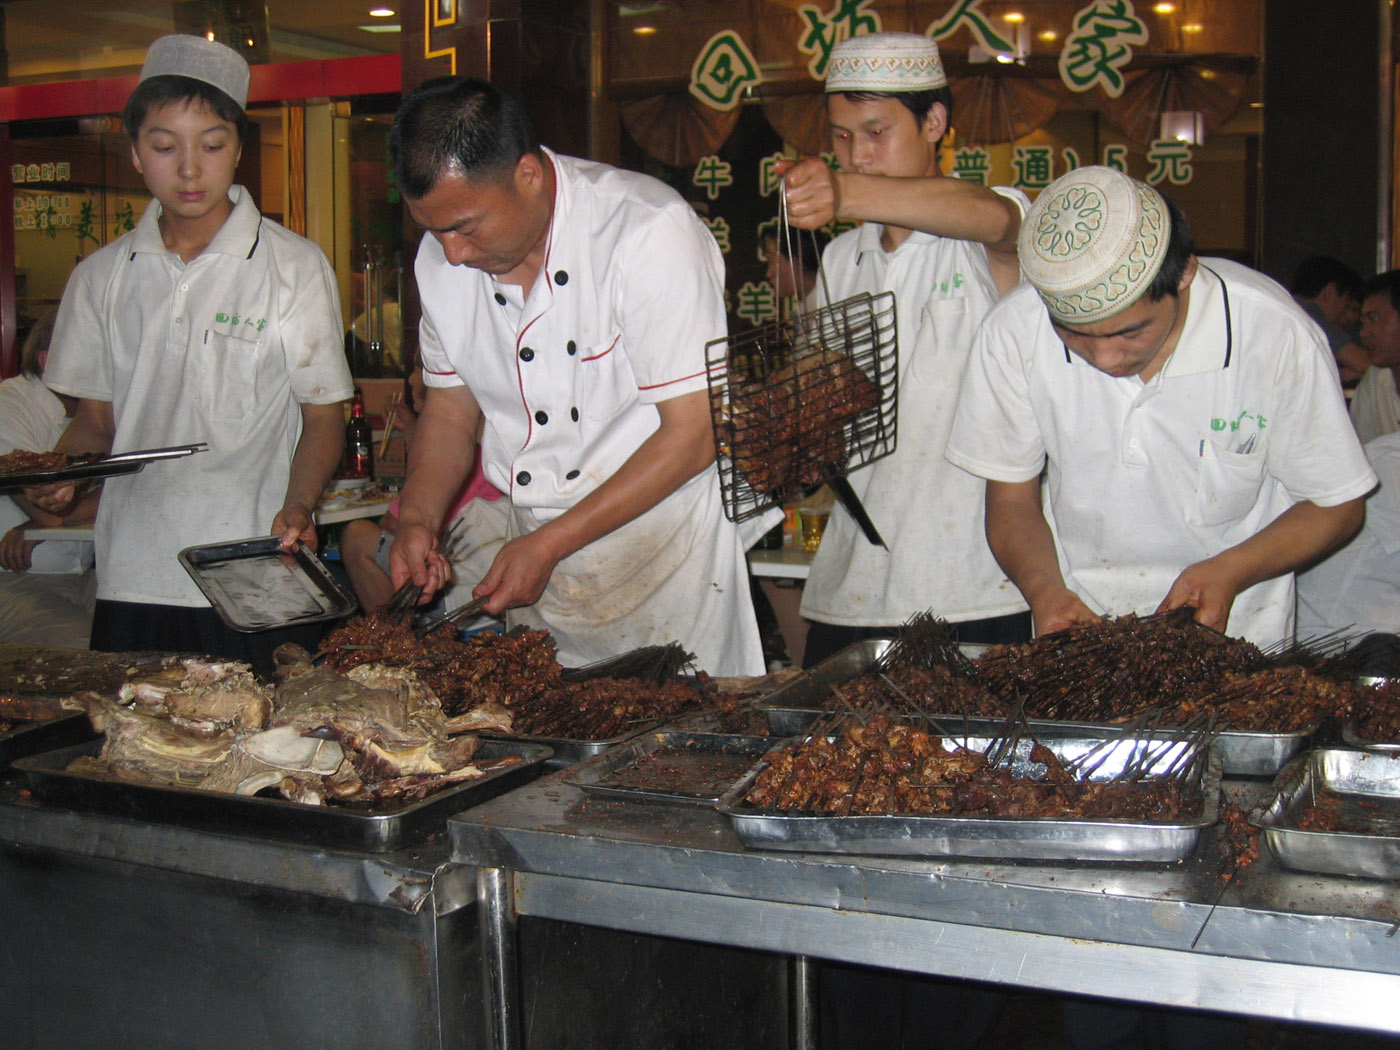 street food's available until very late in Xi'an